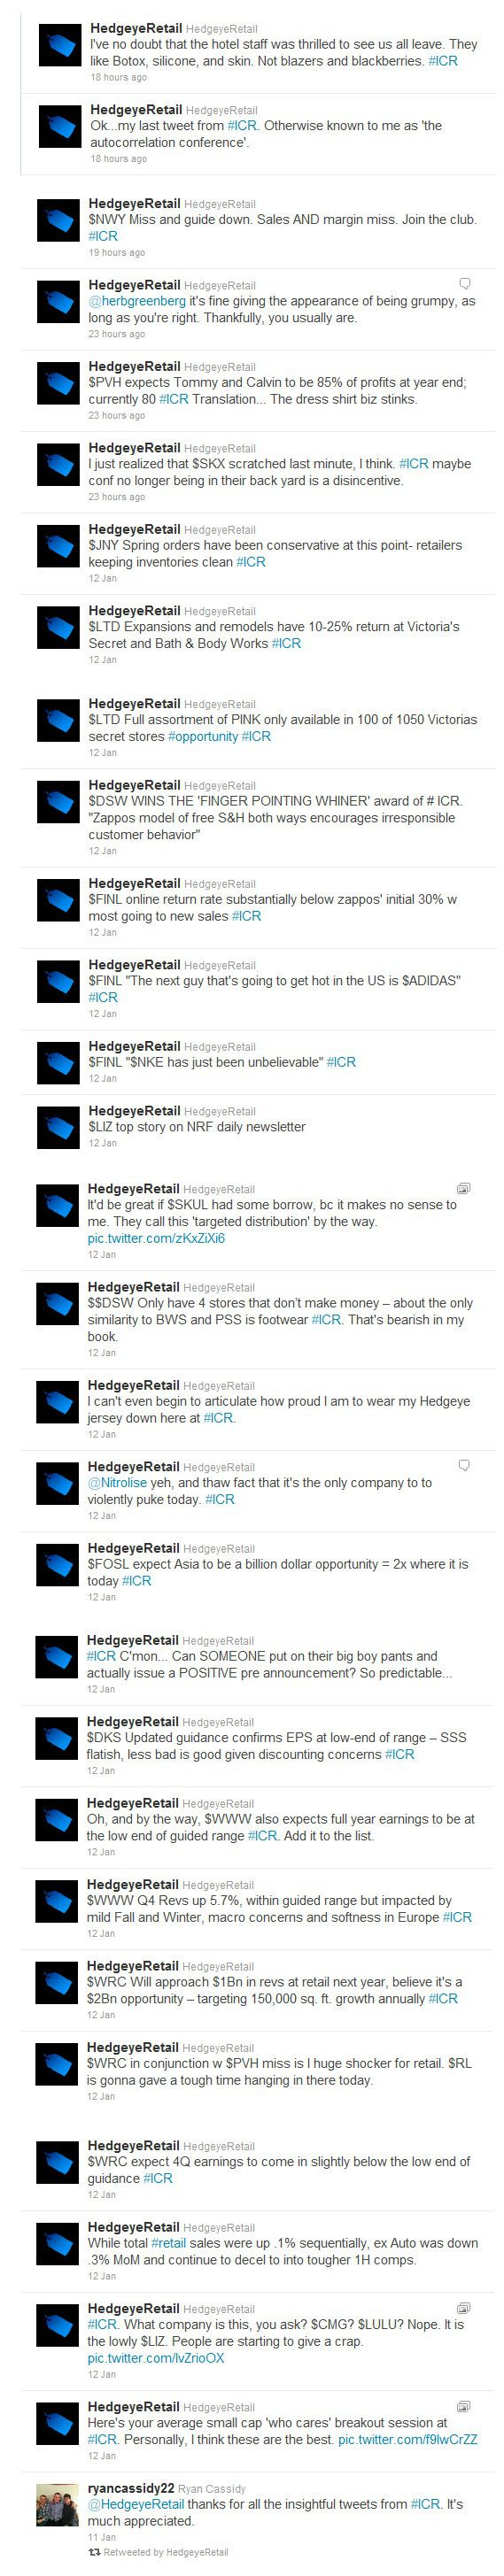 @HedgeyeRetail #ICR (Updated) - TWEET image 1